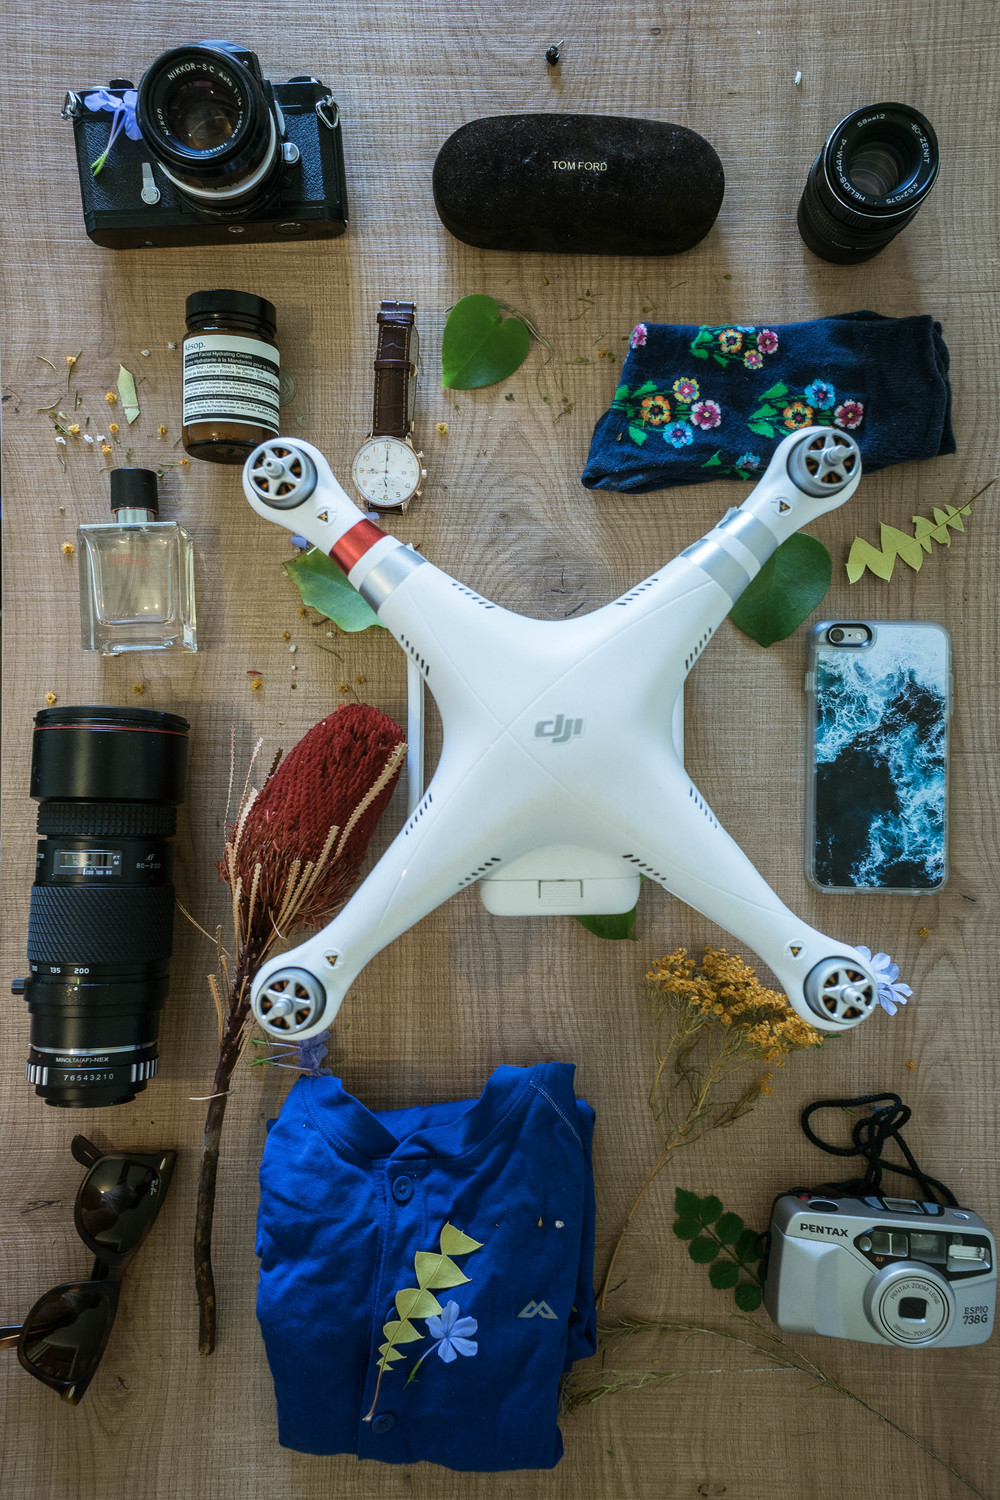 DJI Phantom 3 Advanced   Another Spontaneous purchase, still loving it disregard the CASA regulations.